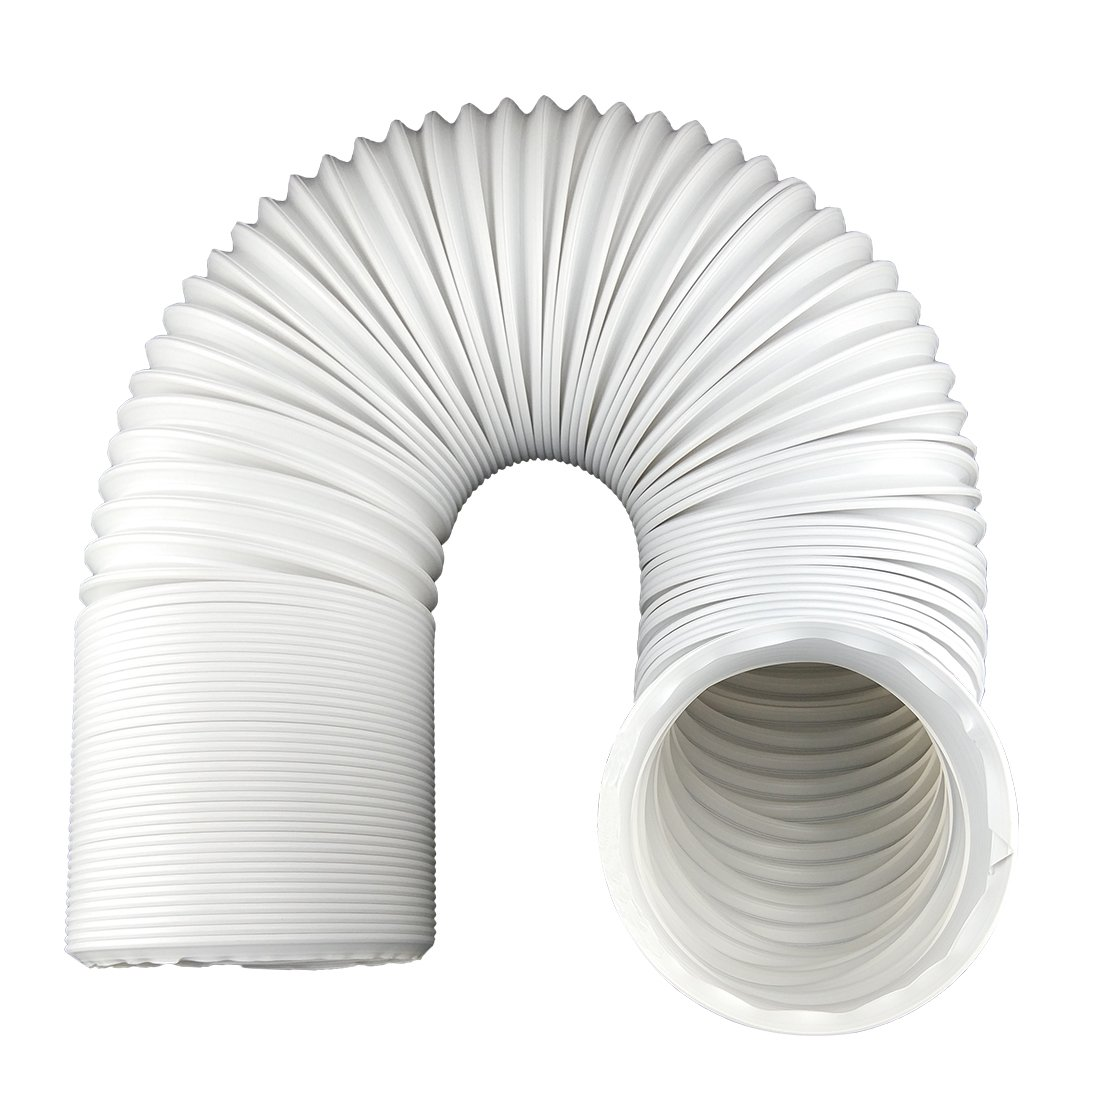 TuhooMall Portable Air Conditioner Exhaust Hose 5 Inch Diameter Counterclockwise (59 Inch Length) (Air Conditioner Exhaust Hose)